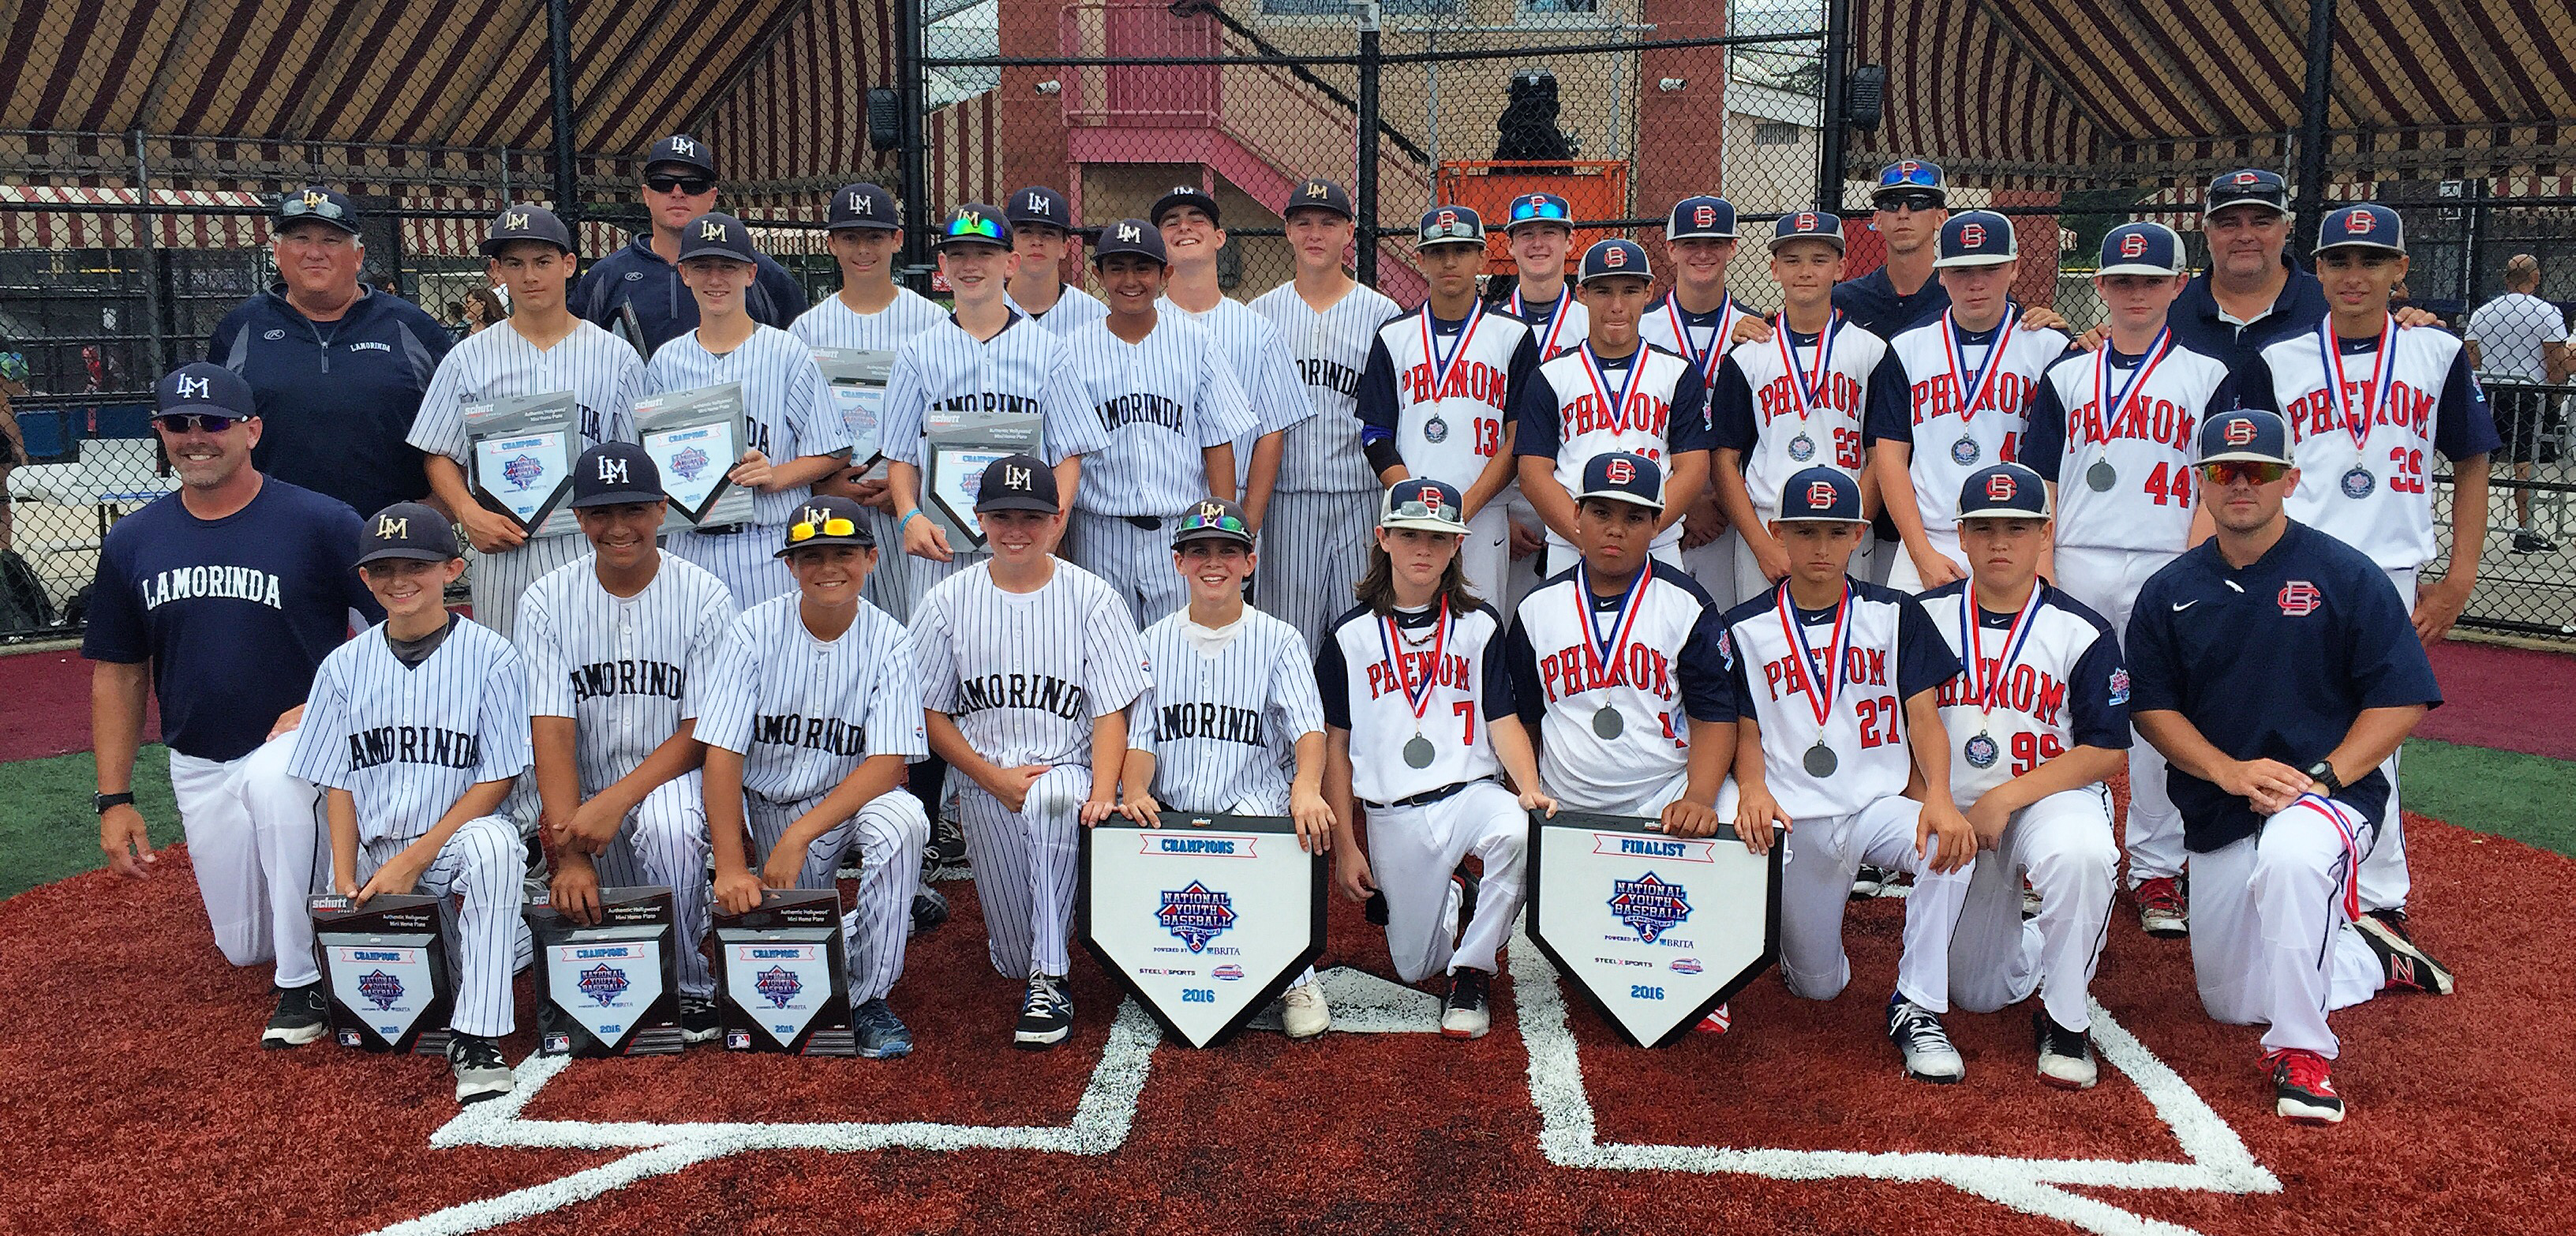 National Champions Crowned at 2016 NYBC